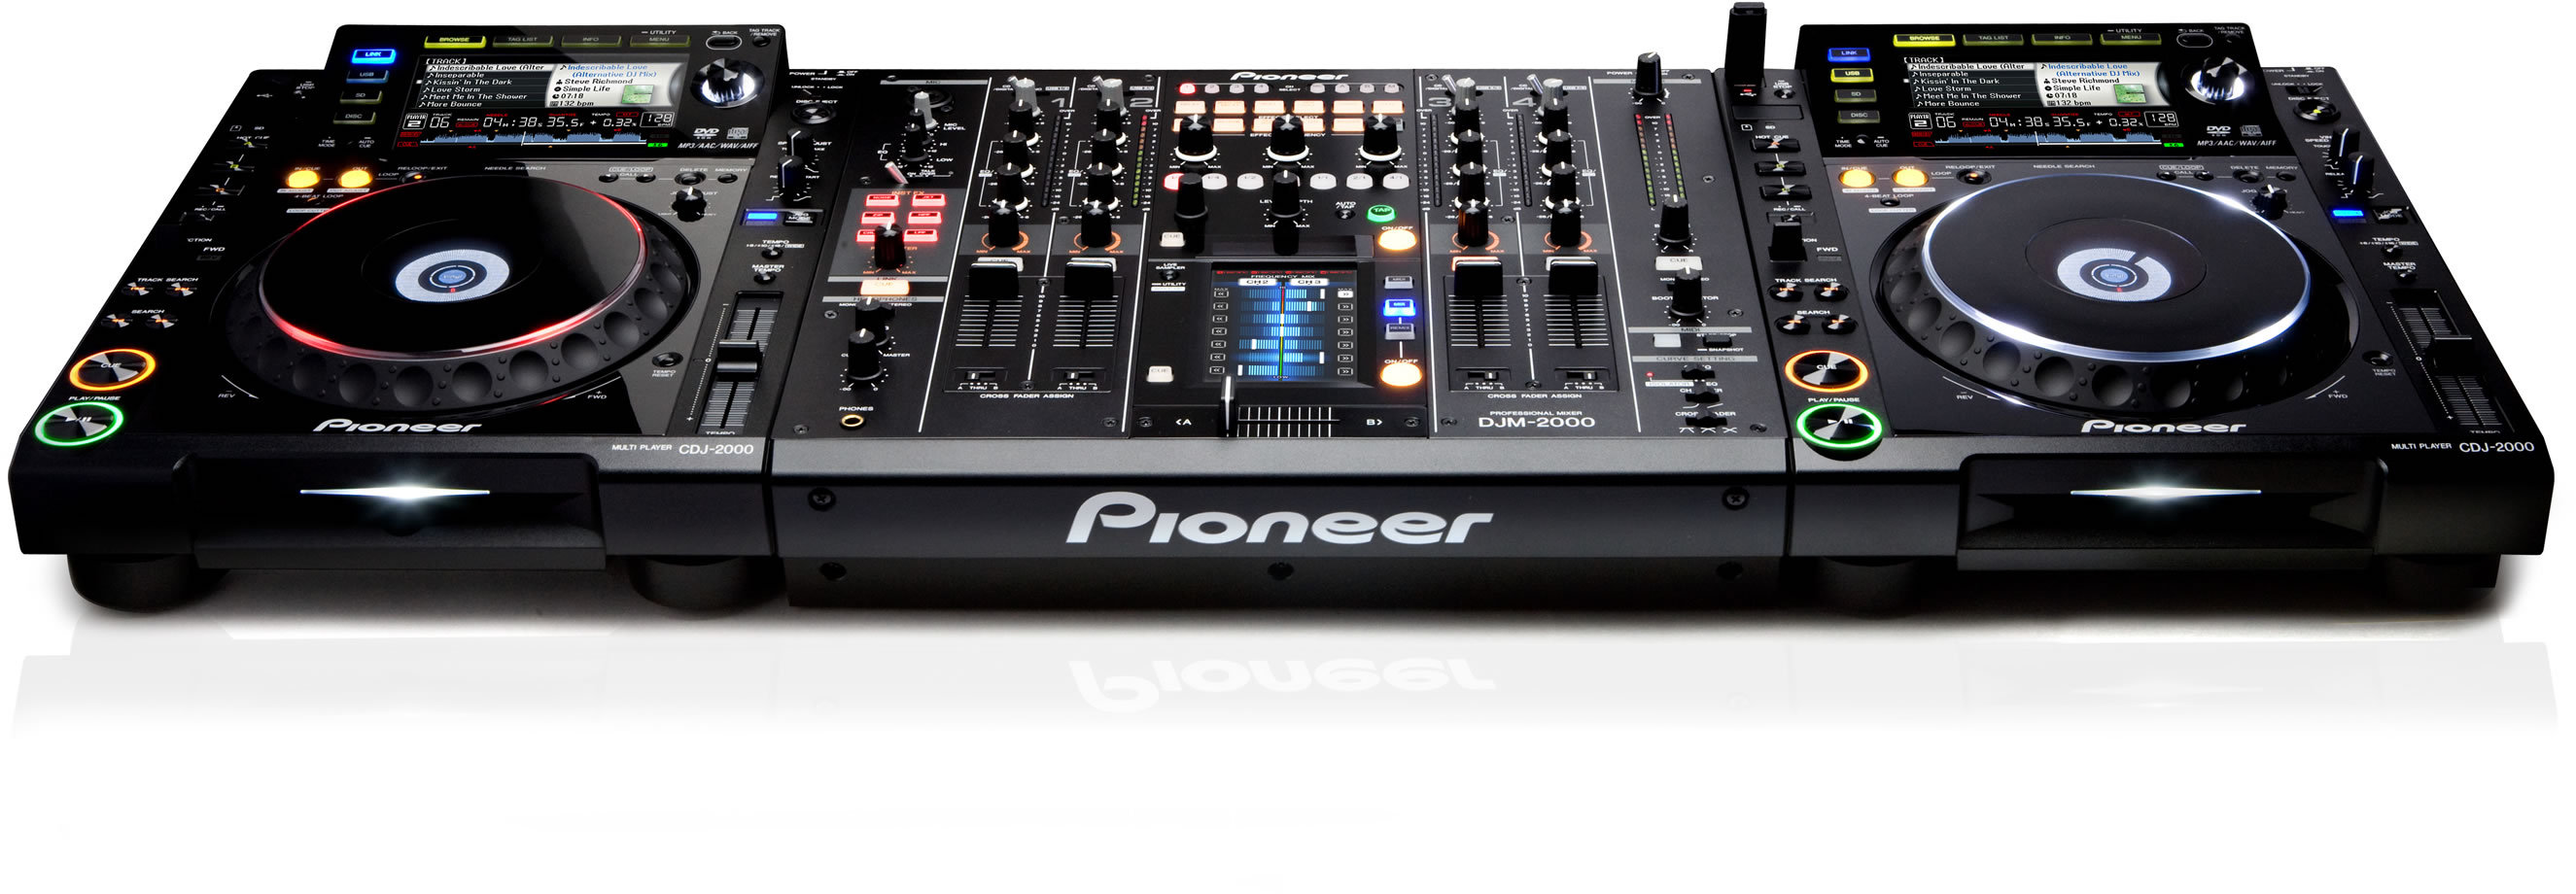 Pioneer CDJ-2000-W DJ Controller Drivers Download Free